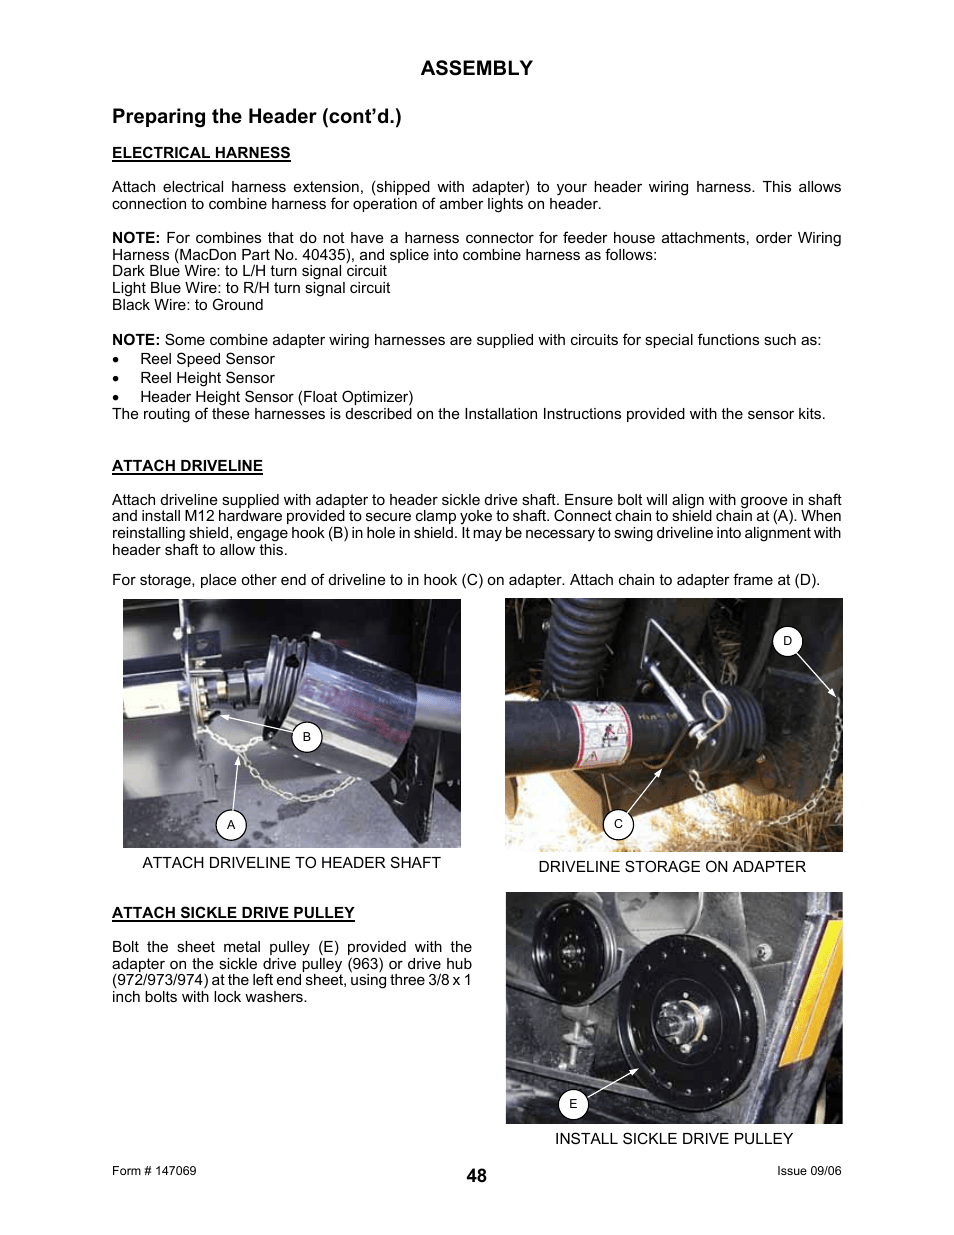 medium resolution of assembly preparing the header cont d macdon 873 combine adapter user manual page 50 91